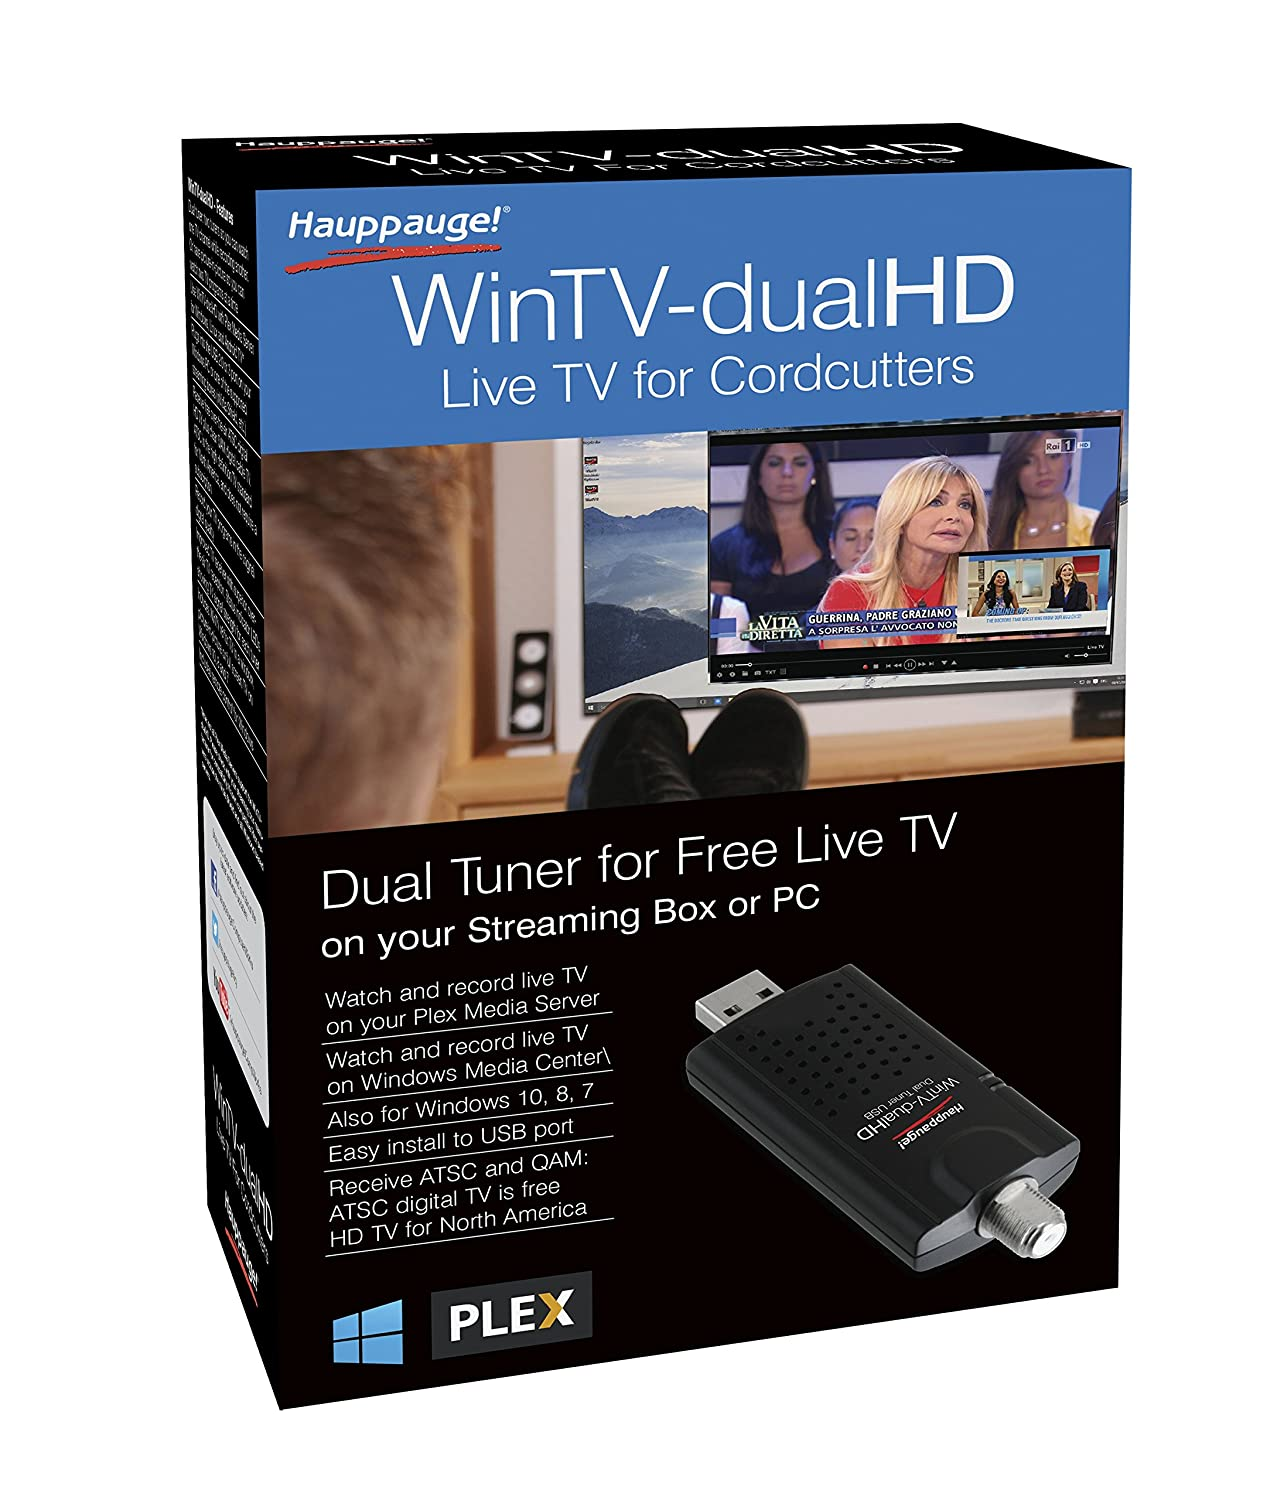 Hauppauge 1657 WinTV-dualHD Cordcutter Dual USB 2 0 TV Tuner for Nvidia  Shield and Windows PC